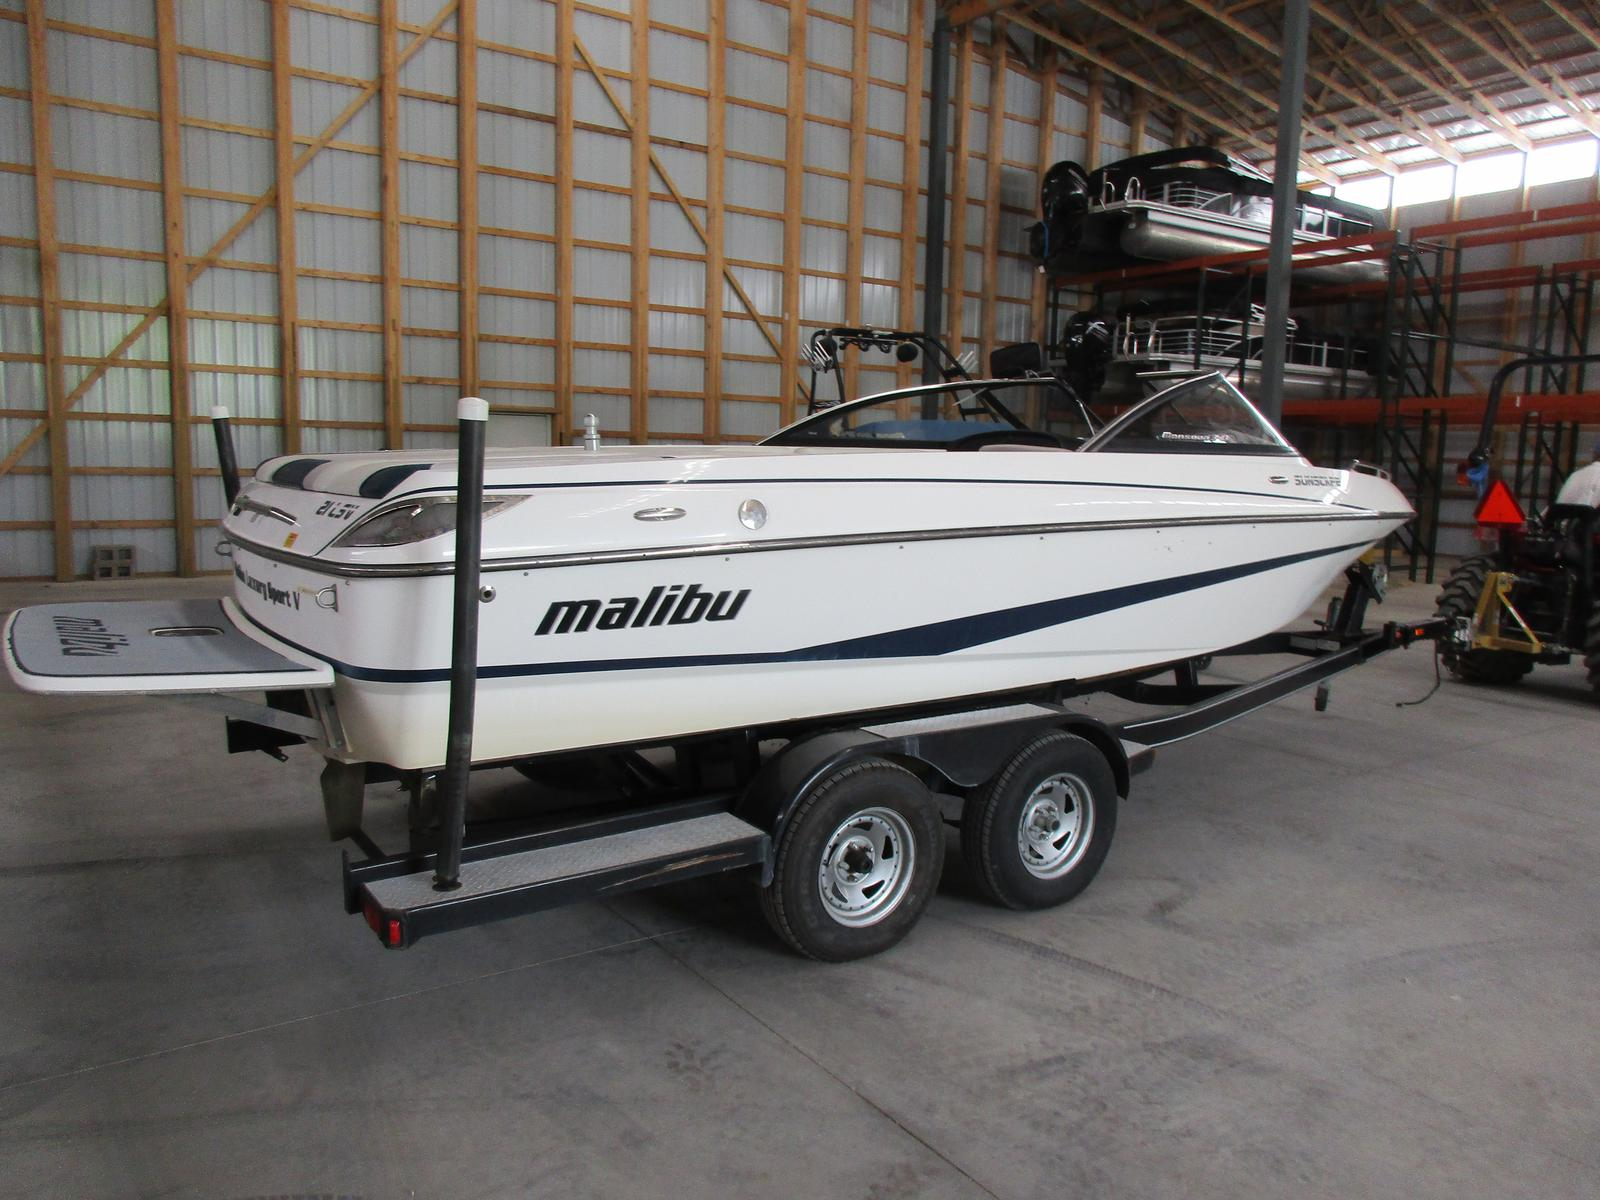 Malibu Boats LLC 21 Sunscape LSV